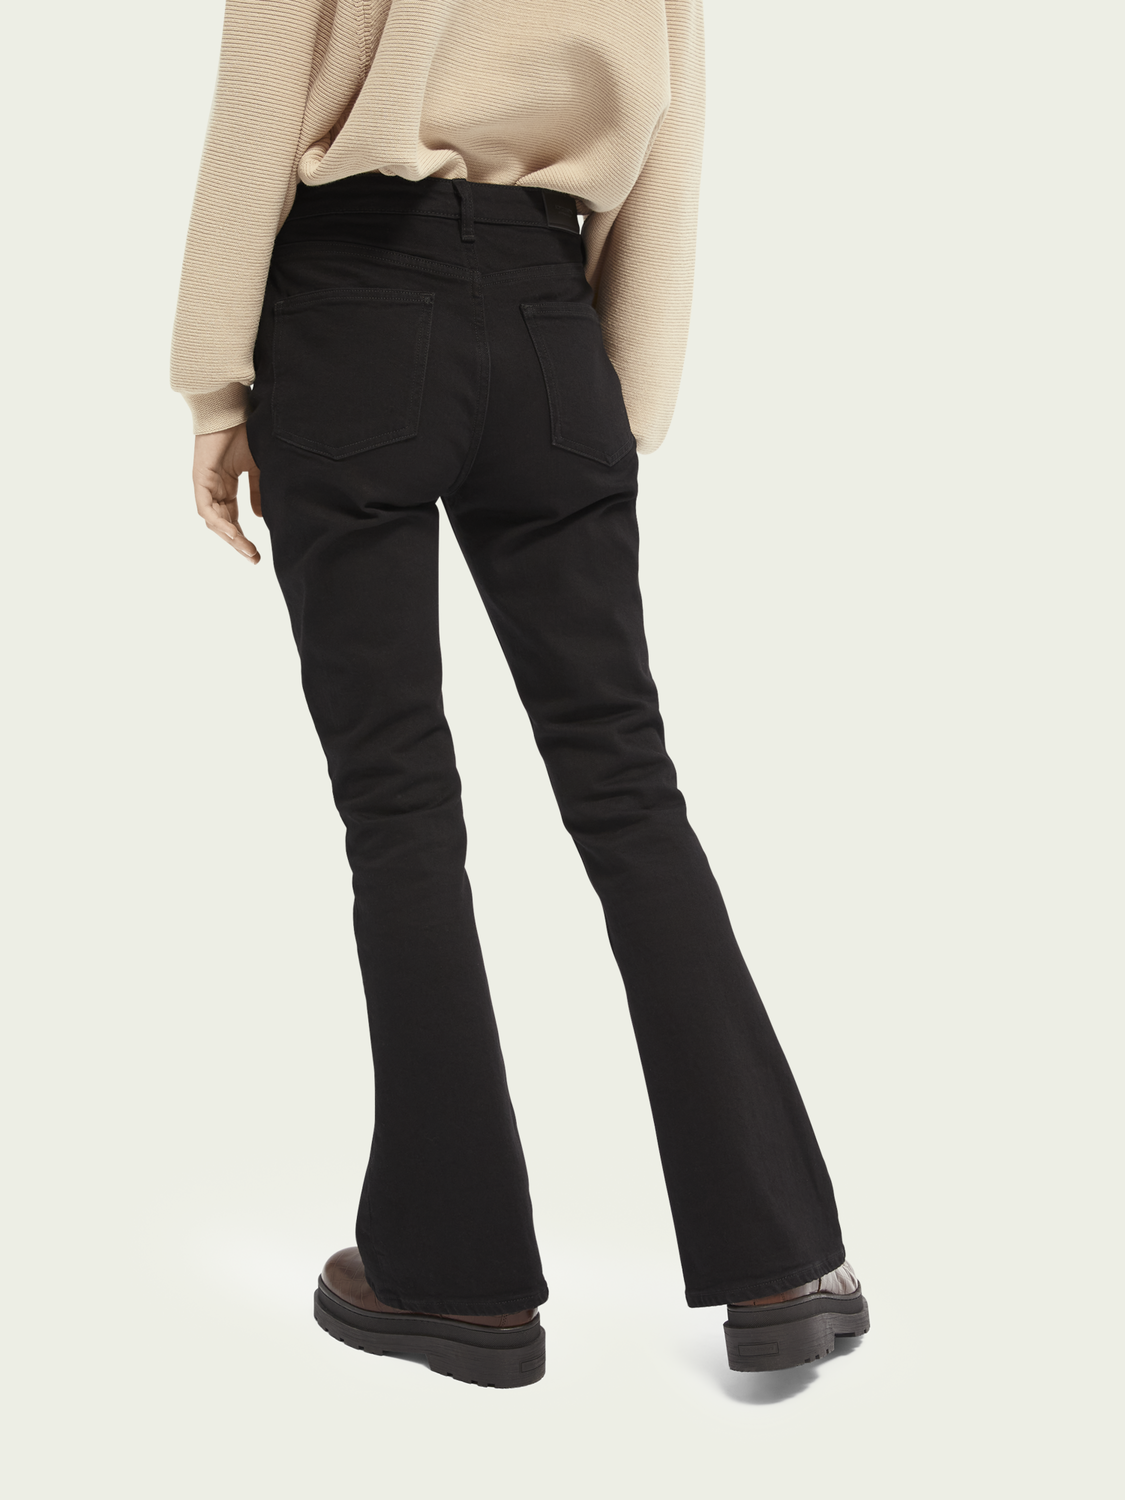 Women The Charm high-rise flared jeans ─ Black Shadow